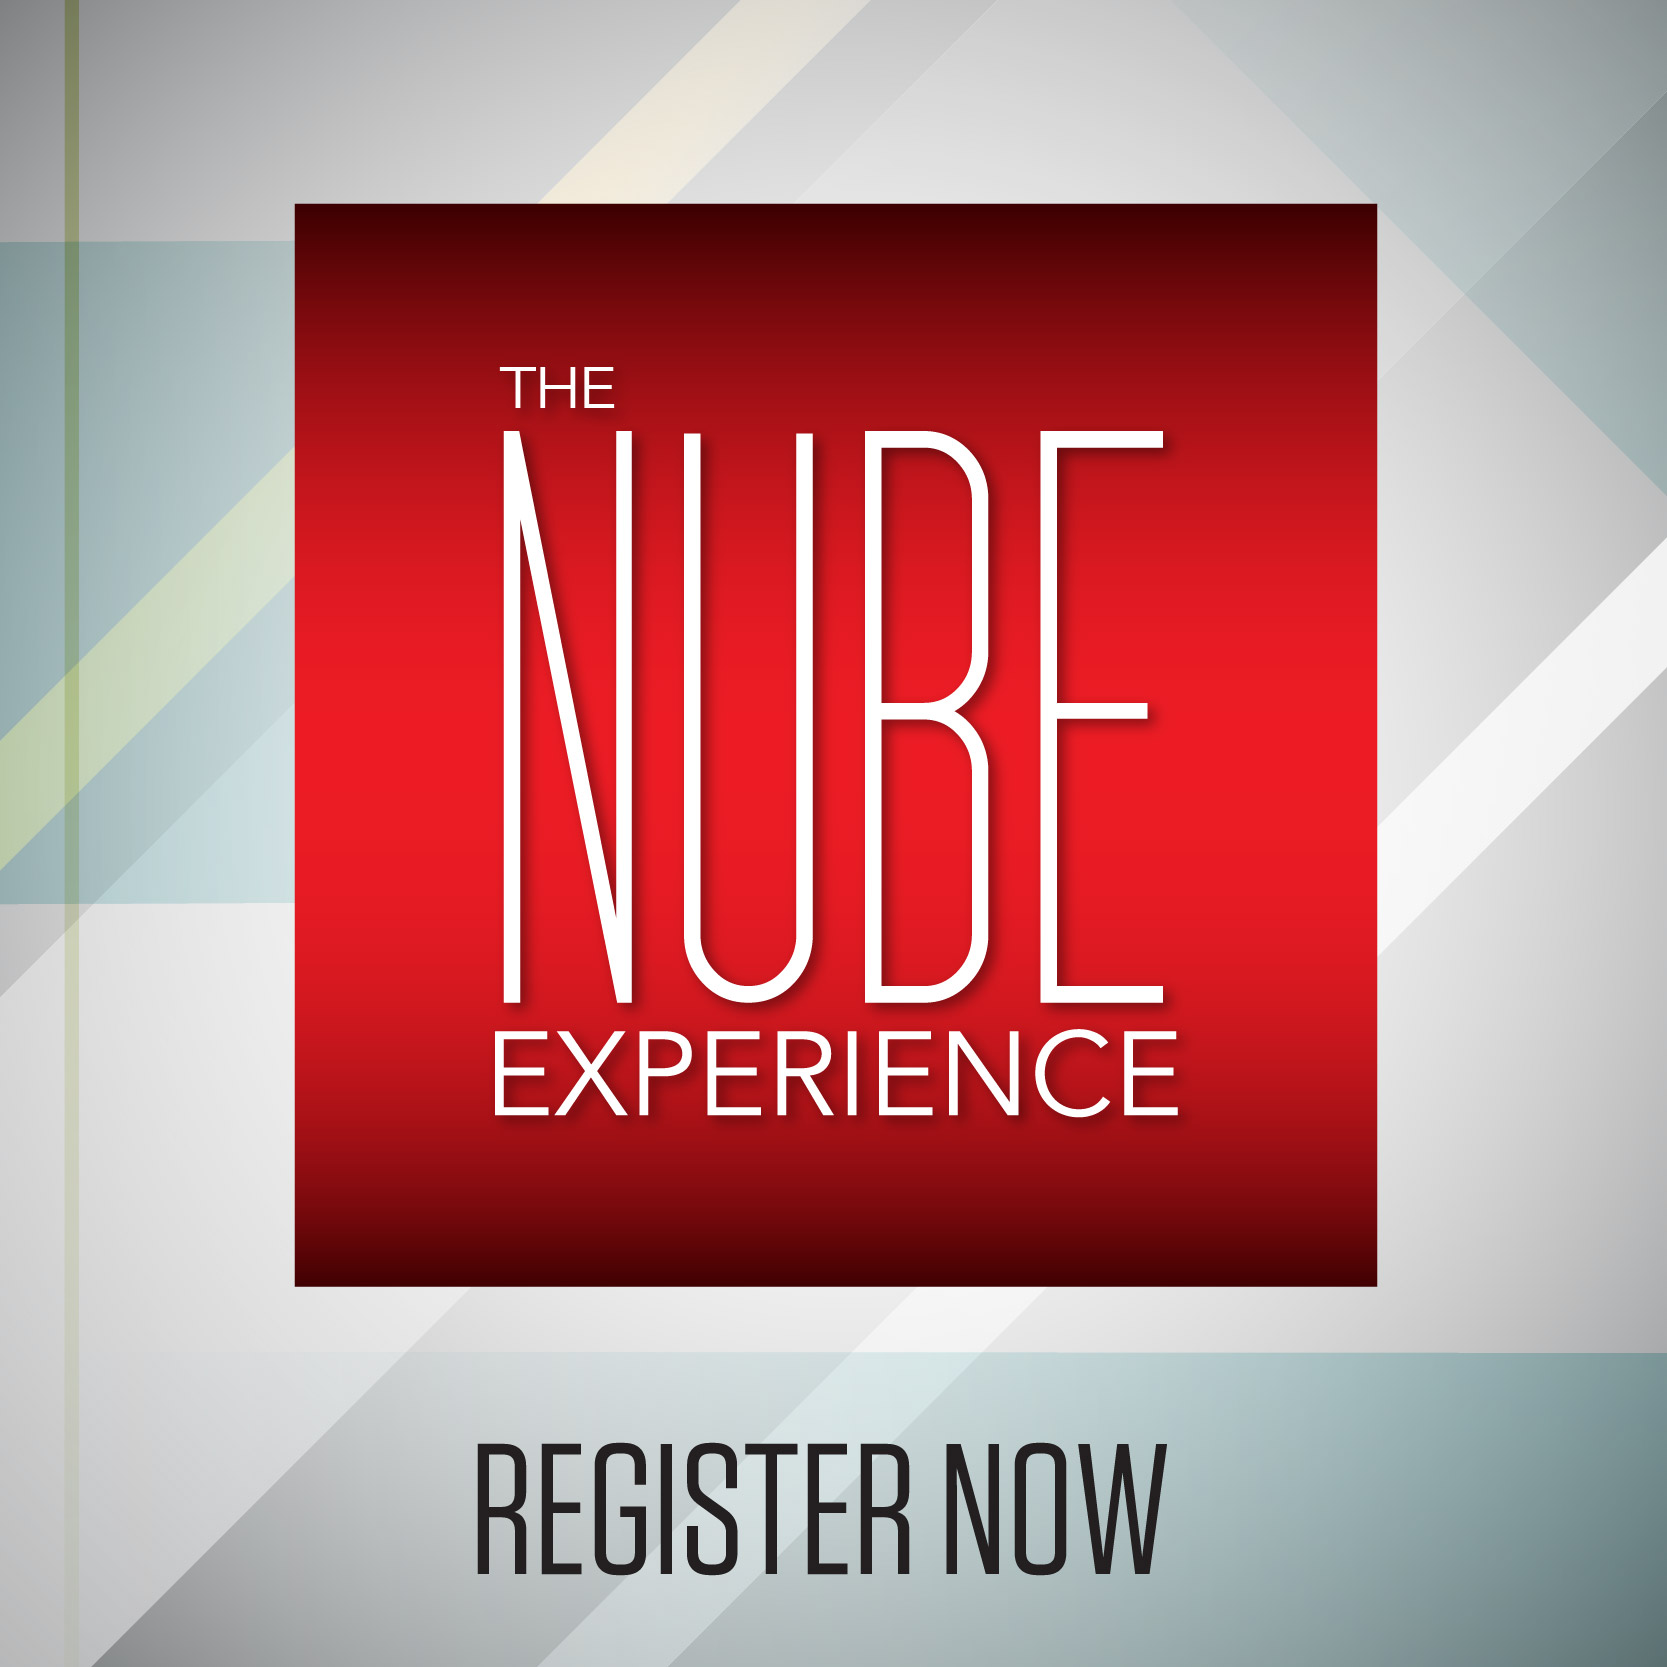 The NUBE Experience- Register now